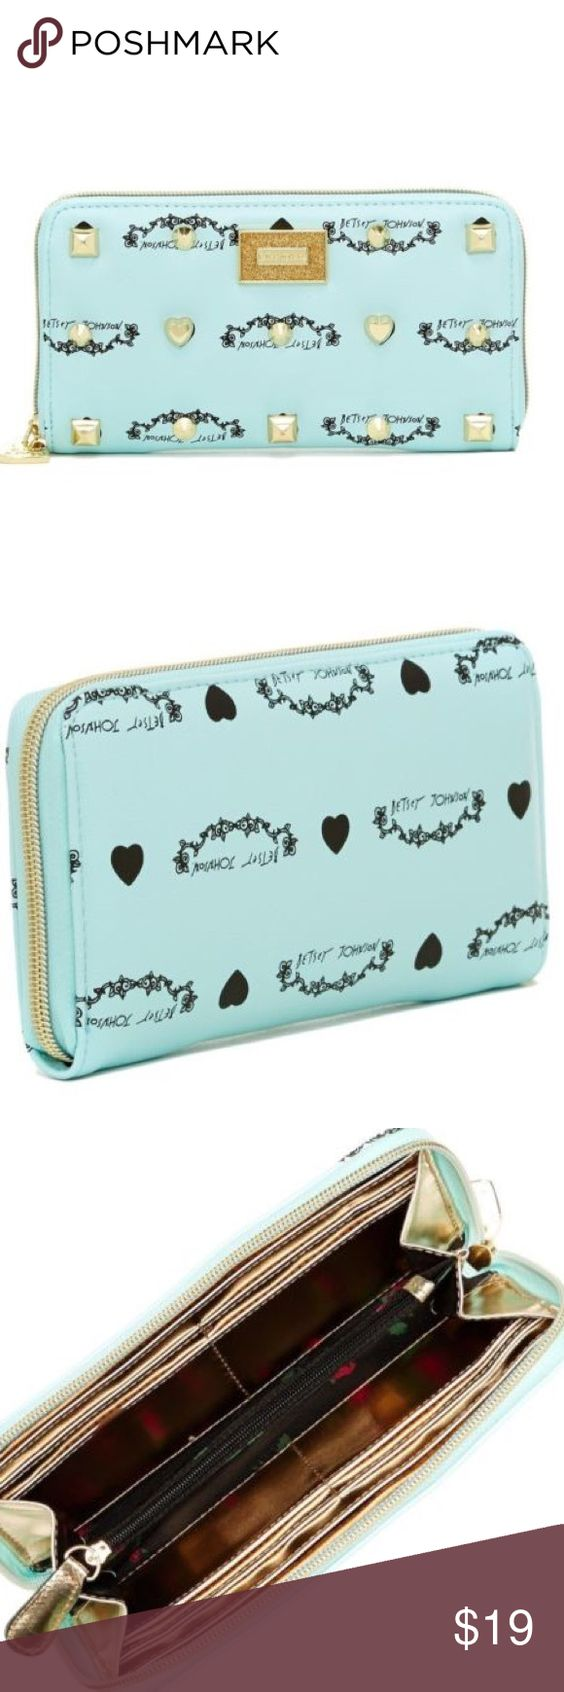 Betsey Johnson Signature Wallet Betsey Johnson signature logo covers the light blue faux leather outside of this wallet, as well as gold toned studs. Front outer wall with logo plaque. Open the zip-around closure to the polyester lined inside featuring rose pattern and you'll see 8 credit card slots, 2 full length bill pouches, a clear ID slot and a large zip coin compartment. Nice basic wallet. Betsey Johnson Bags Wallets